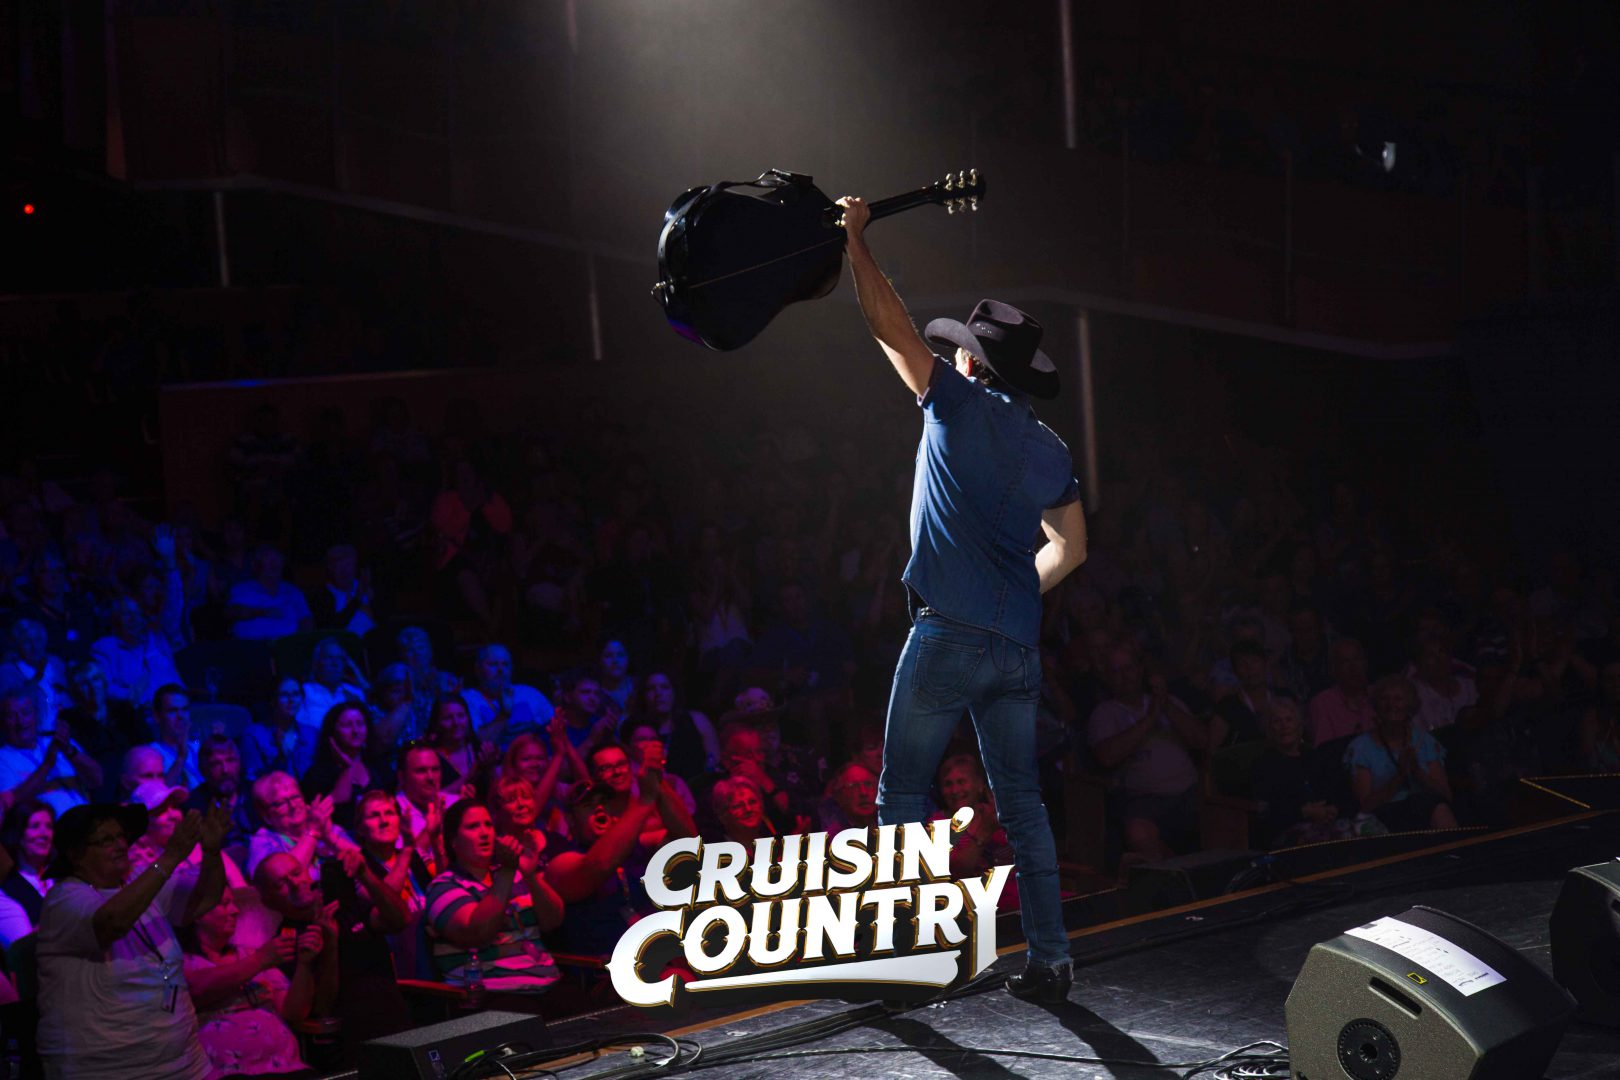 GALLERY: Cruisin Country 2017 Photos